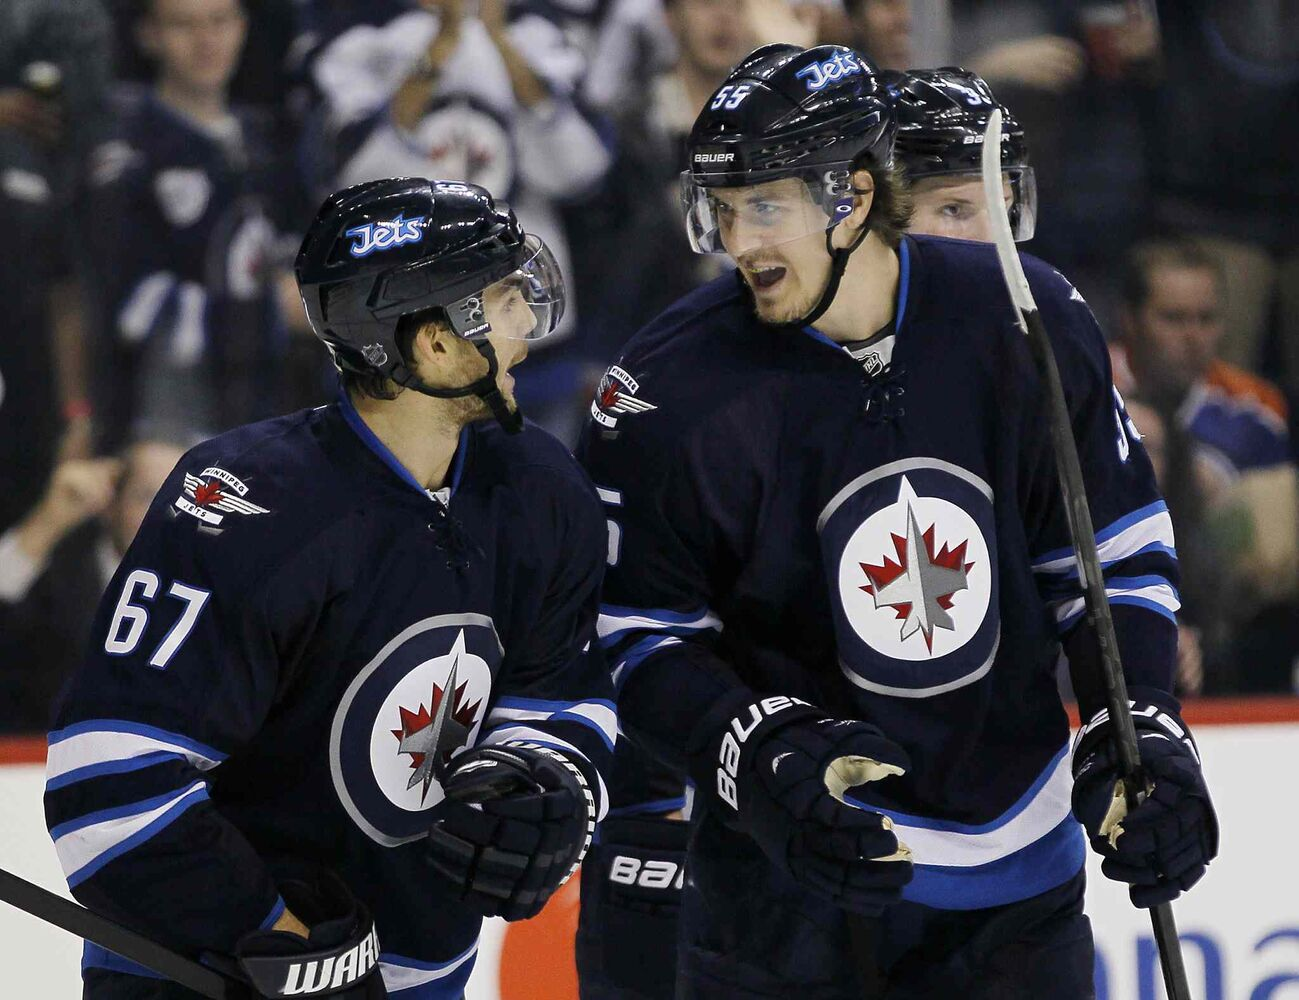 Winnipeg Jets Mark Scheifele, right, and Michael Frolik celebrate Frolik's second-period goal against the Edmonton Oilers. (JOHN WOODS / WINNIPEG FREE PRESS)